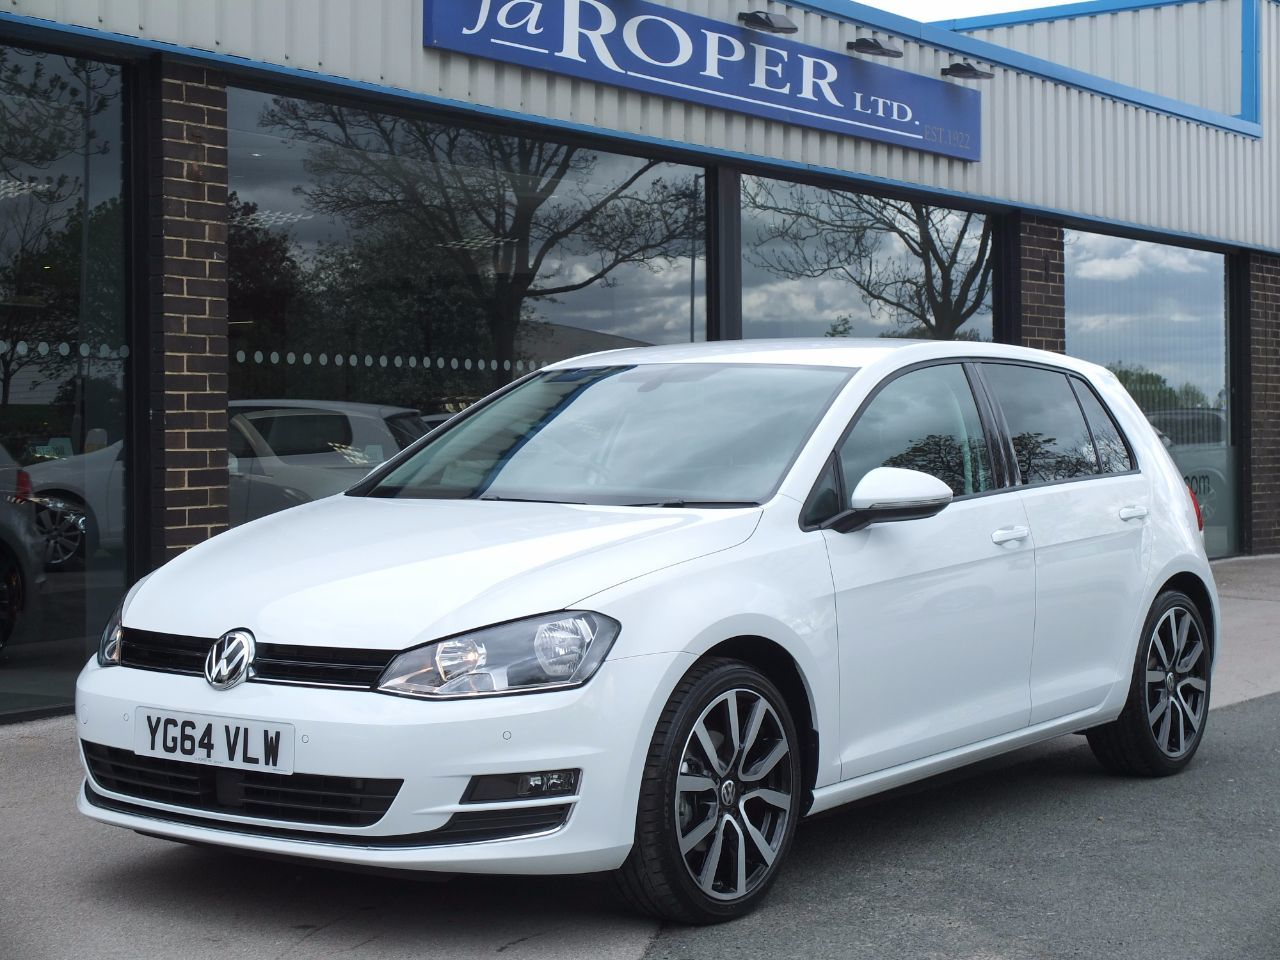 Volkswagen Golf 2.0 TDI GT 5 Door DSG Auto 150 ps Hatchback Diesel Pure WhiteVolkswagen Golf 2.0 TDI GT 5 Door DSG Auto 150 ps Hatchback Diesel Pure White at fa Roper Ltd Bradford